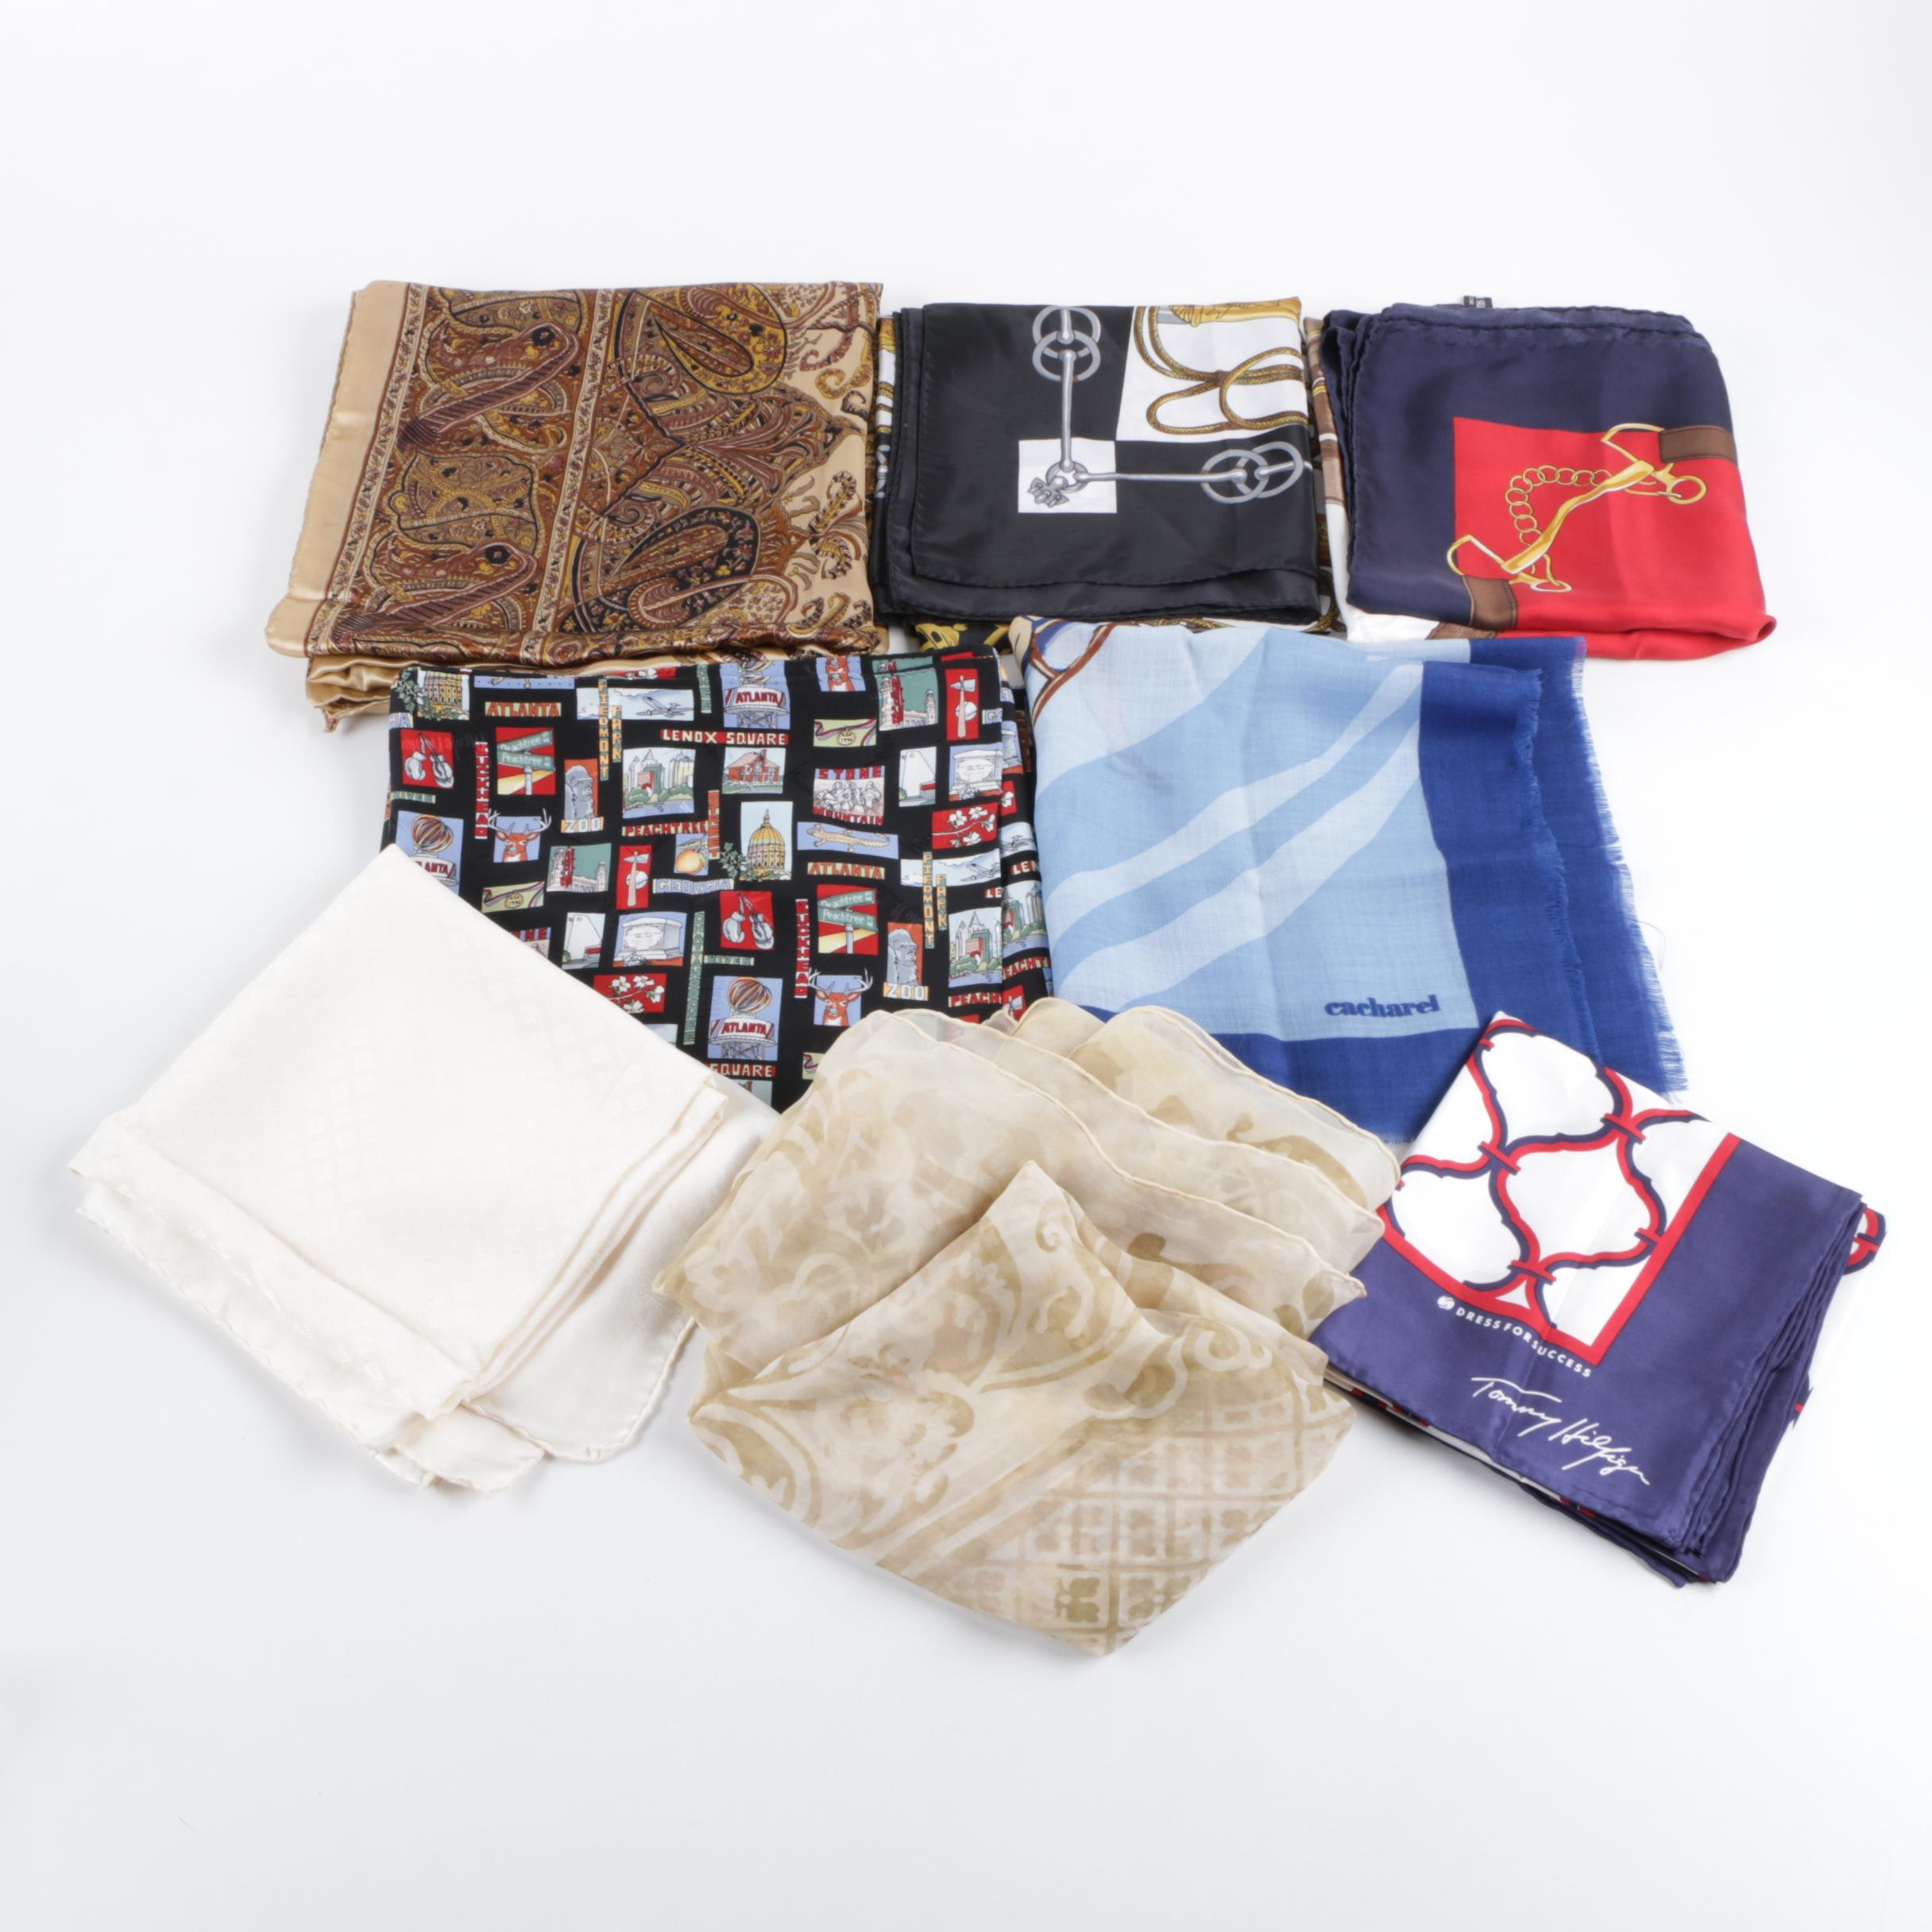 Women's Fashion Scarves including Longchamp, Tommy Hilfiger and Nicole Miller